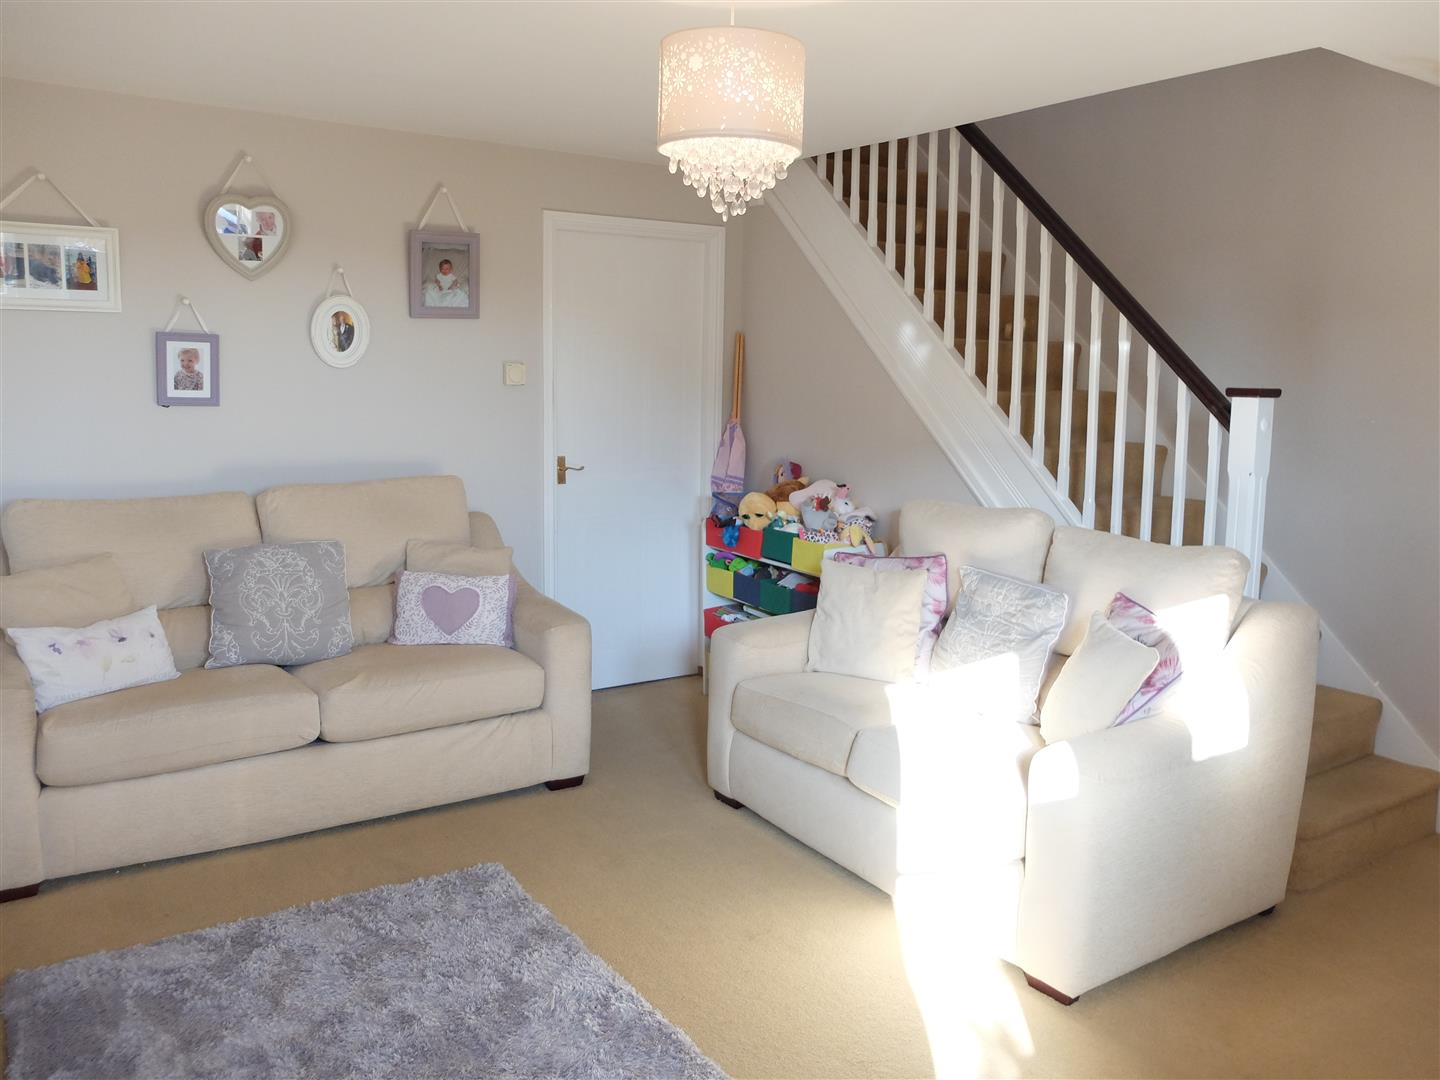 3 Bedrooms House - Mid Terrace On Sale 136 Valley Drive Carlisle